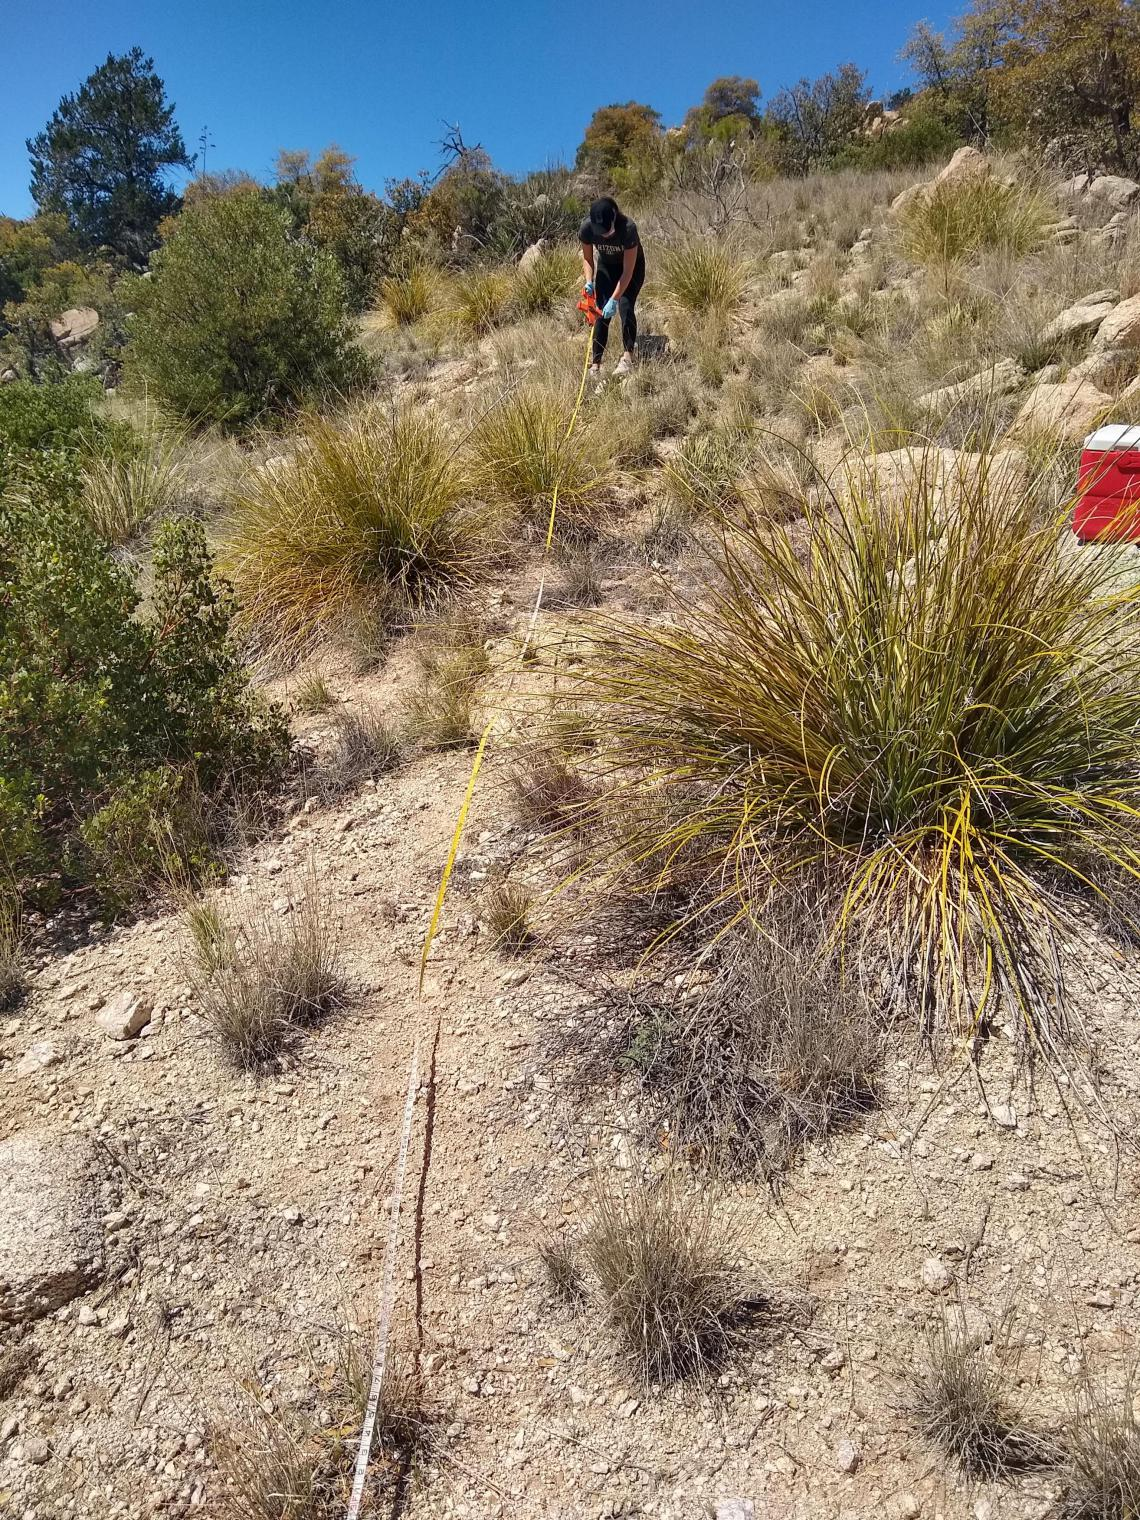 Studying microbial communities in the desert